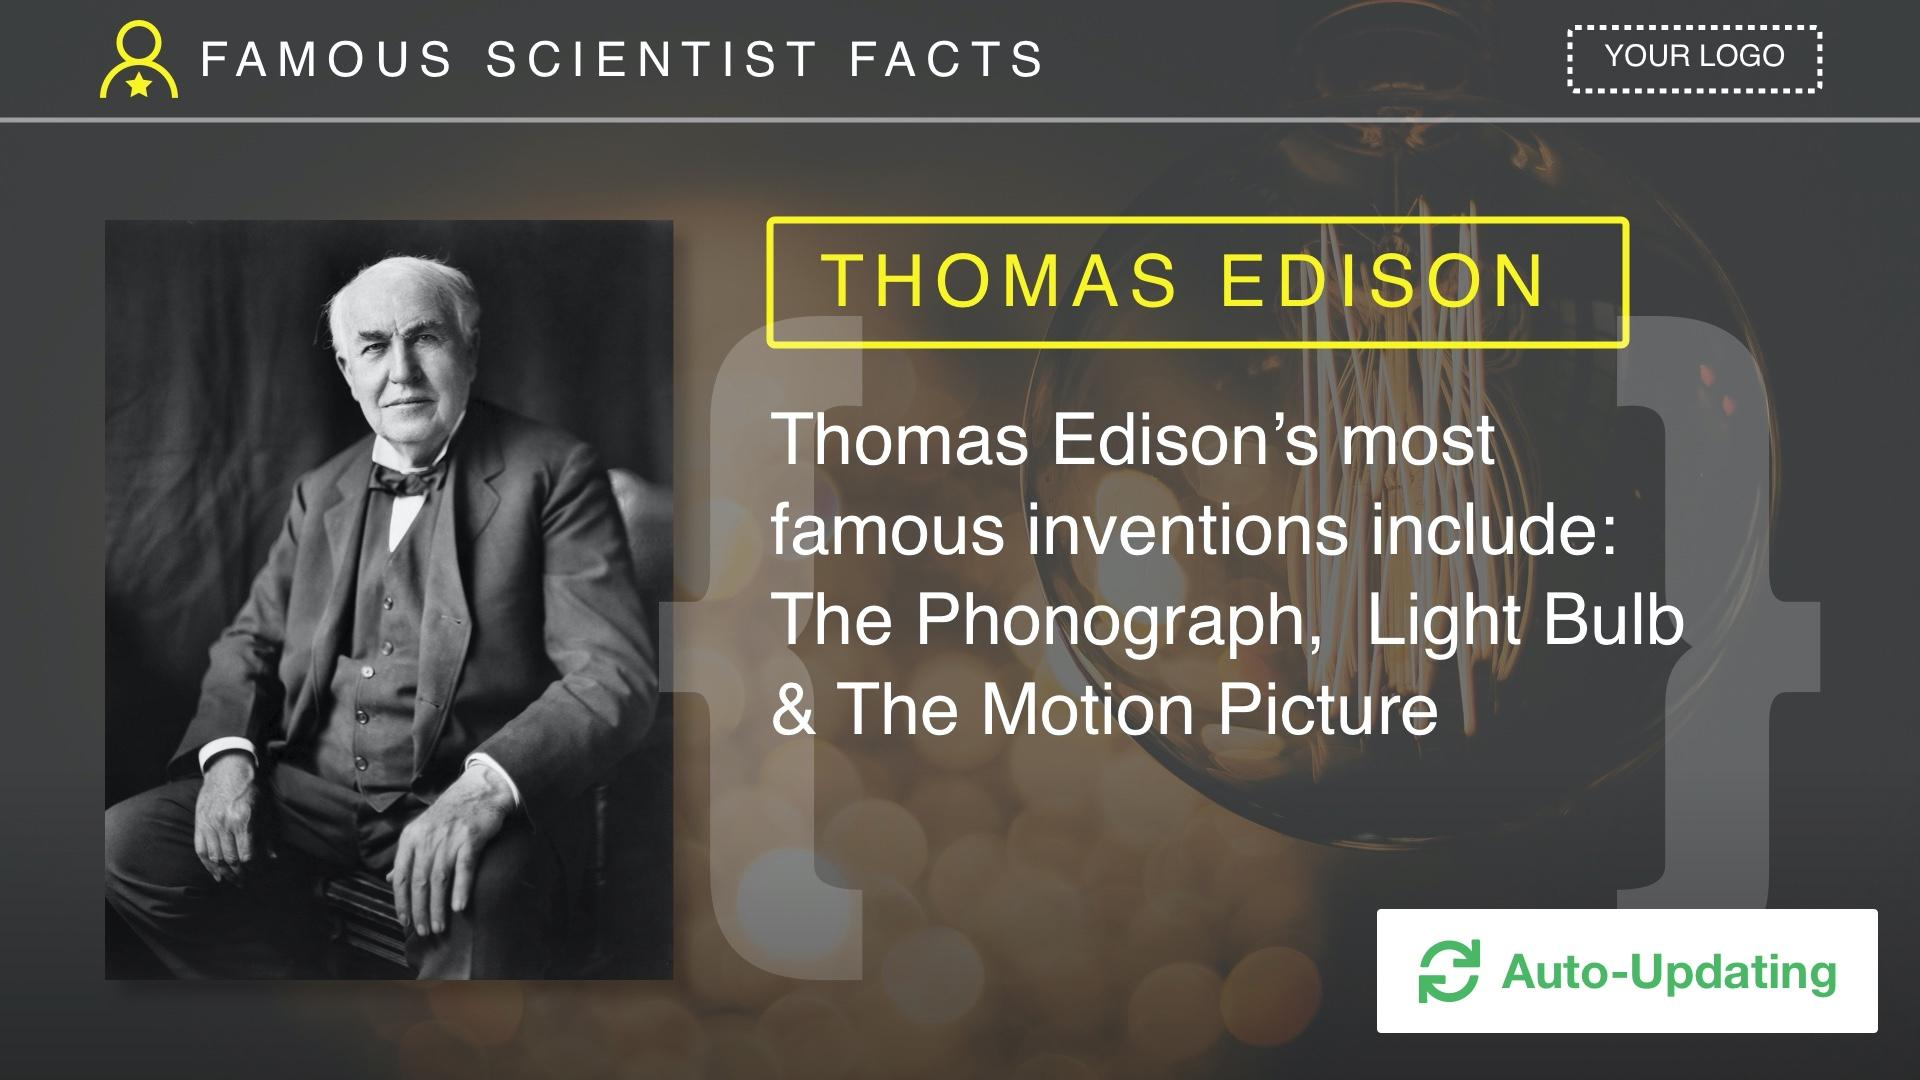 Famous Scientists Digital Signage Template